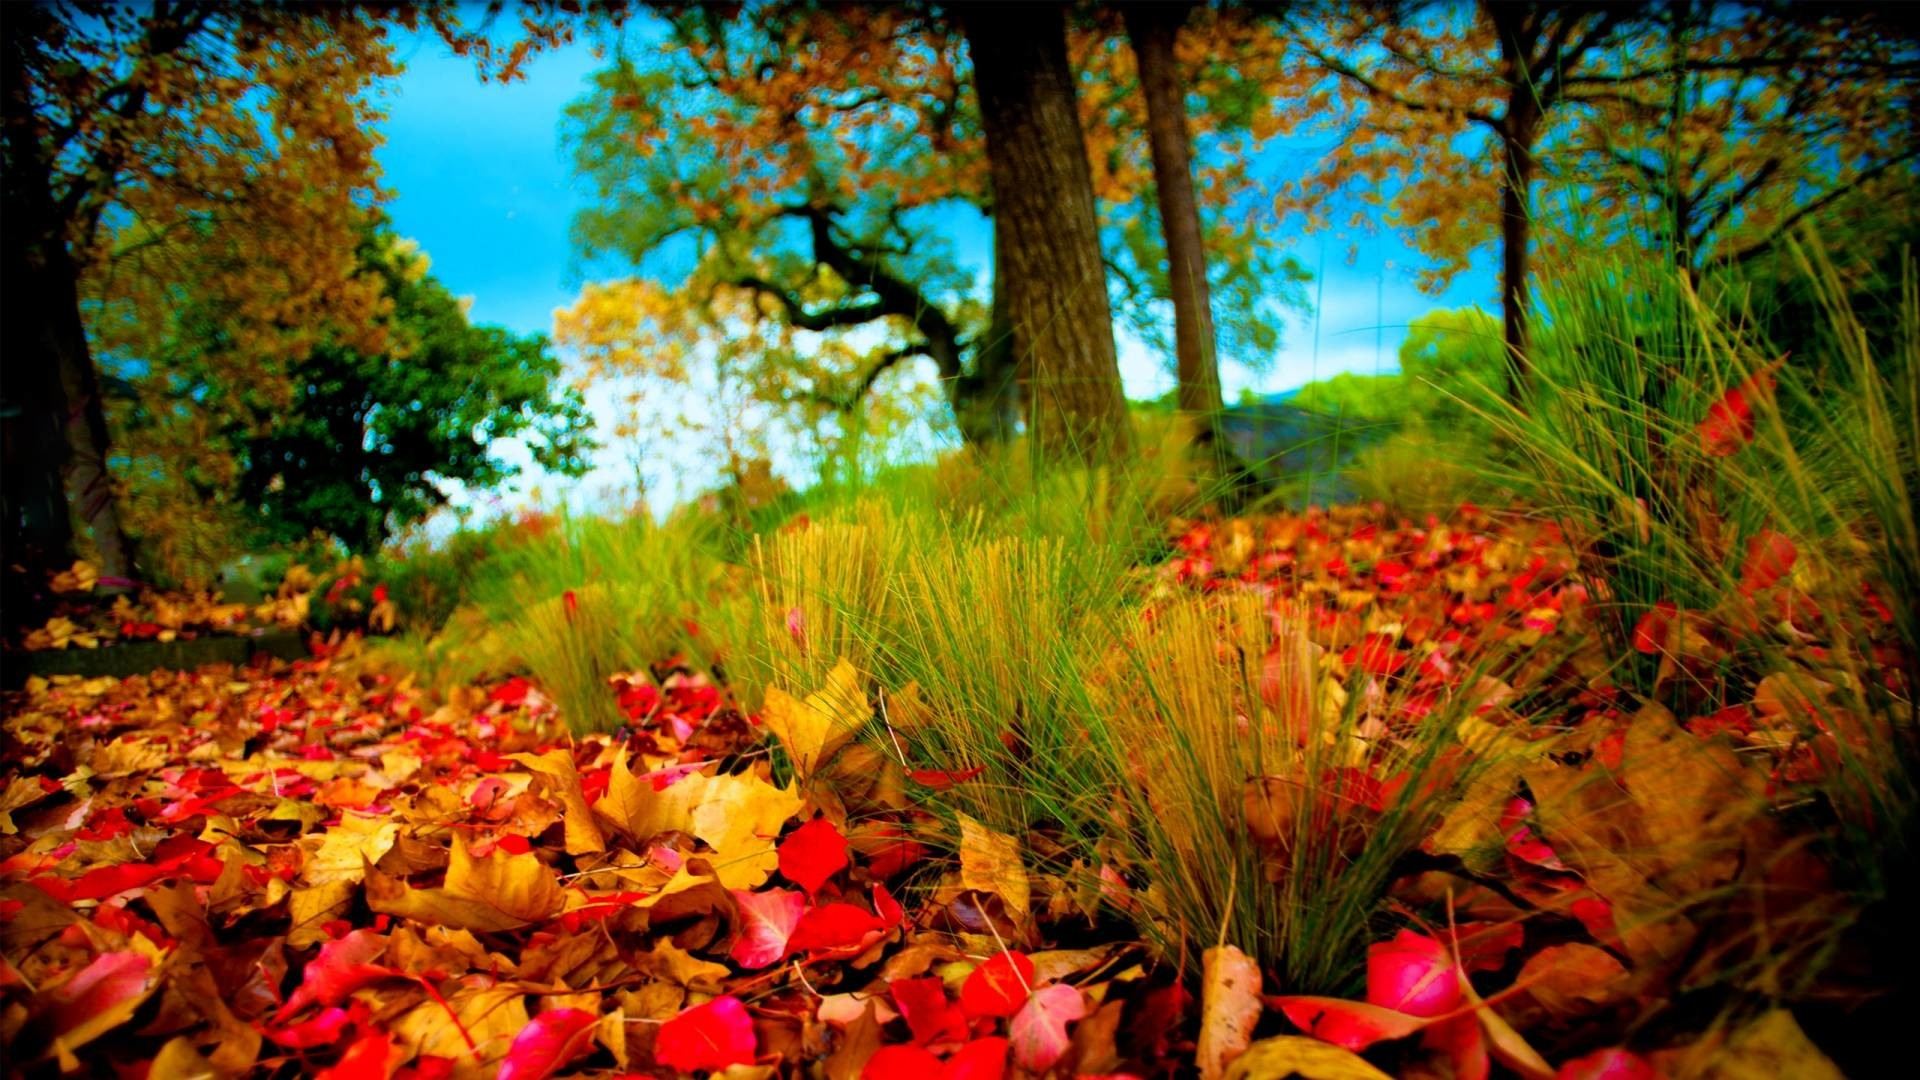 Hd Nature Wallpapers 1080p 74 Pictures